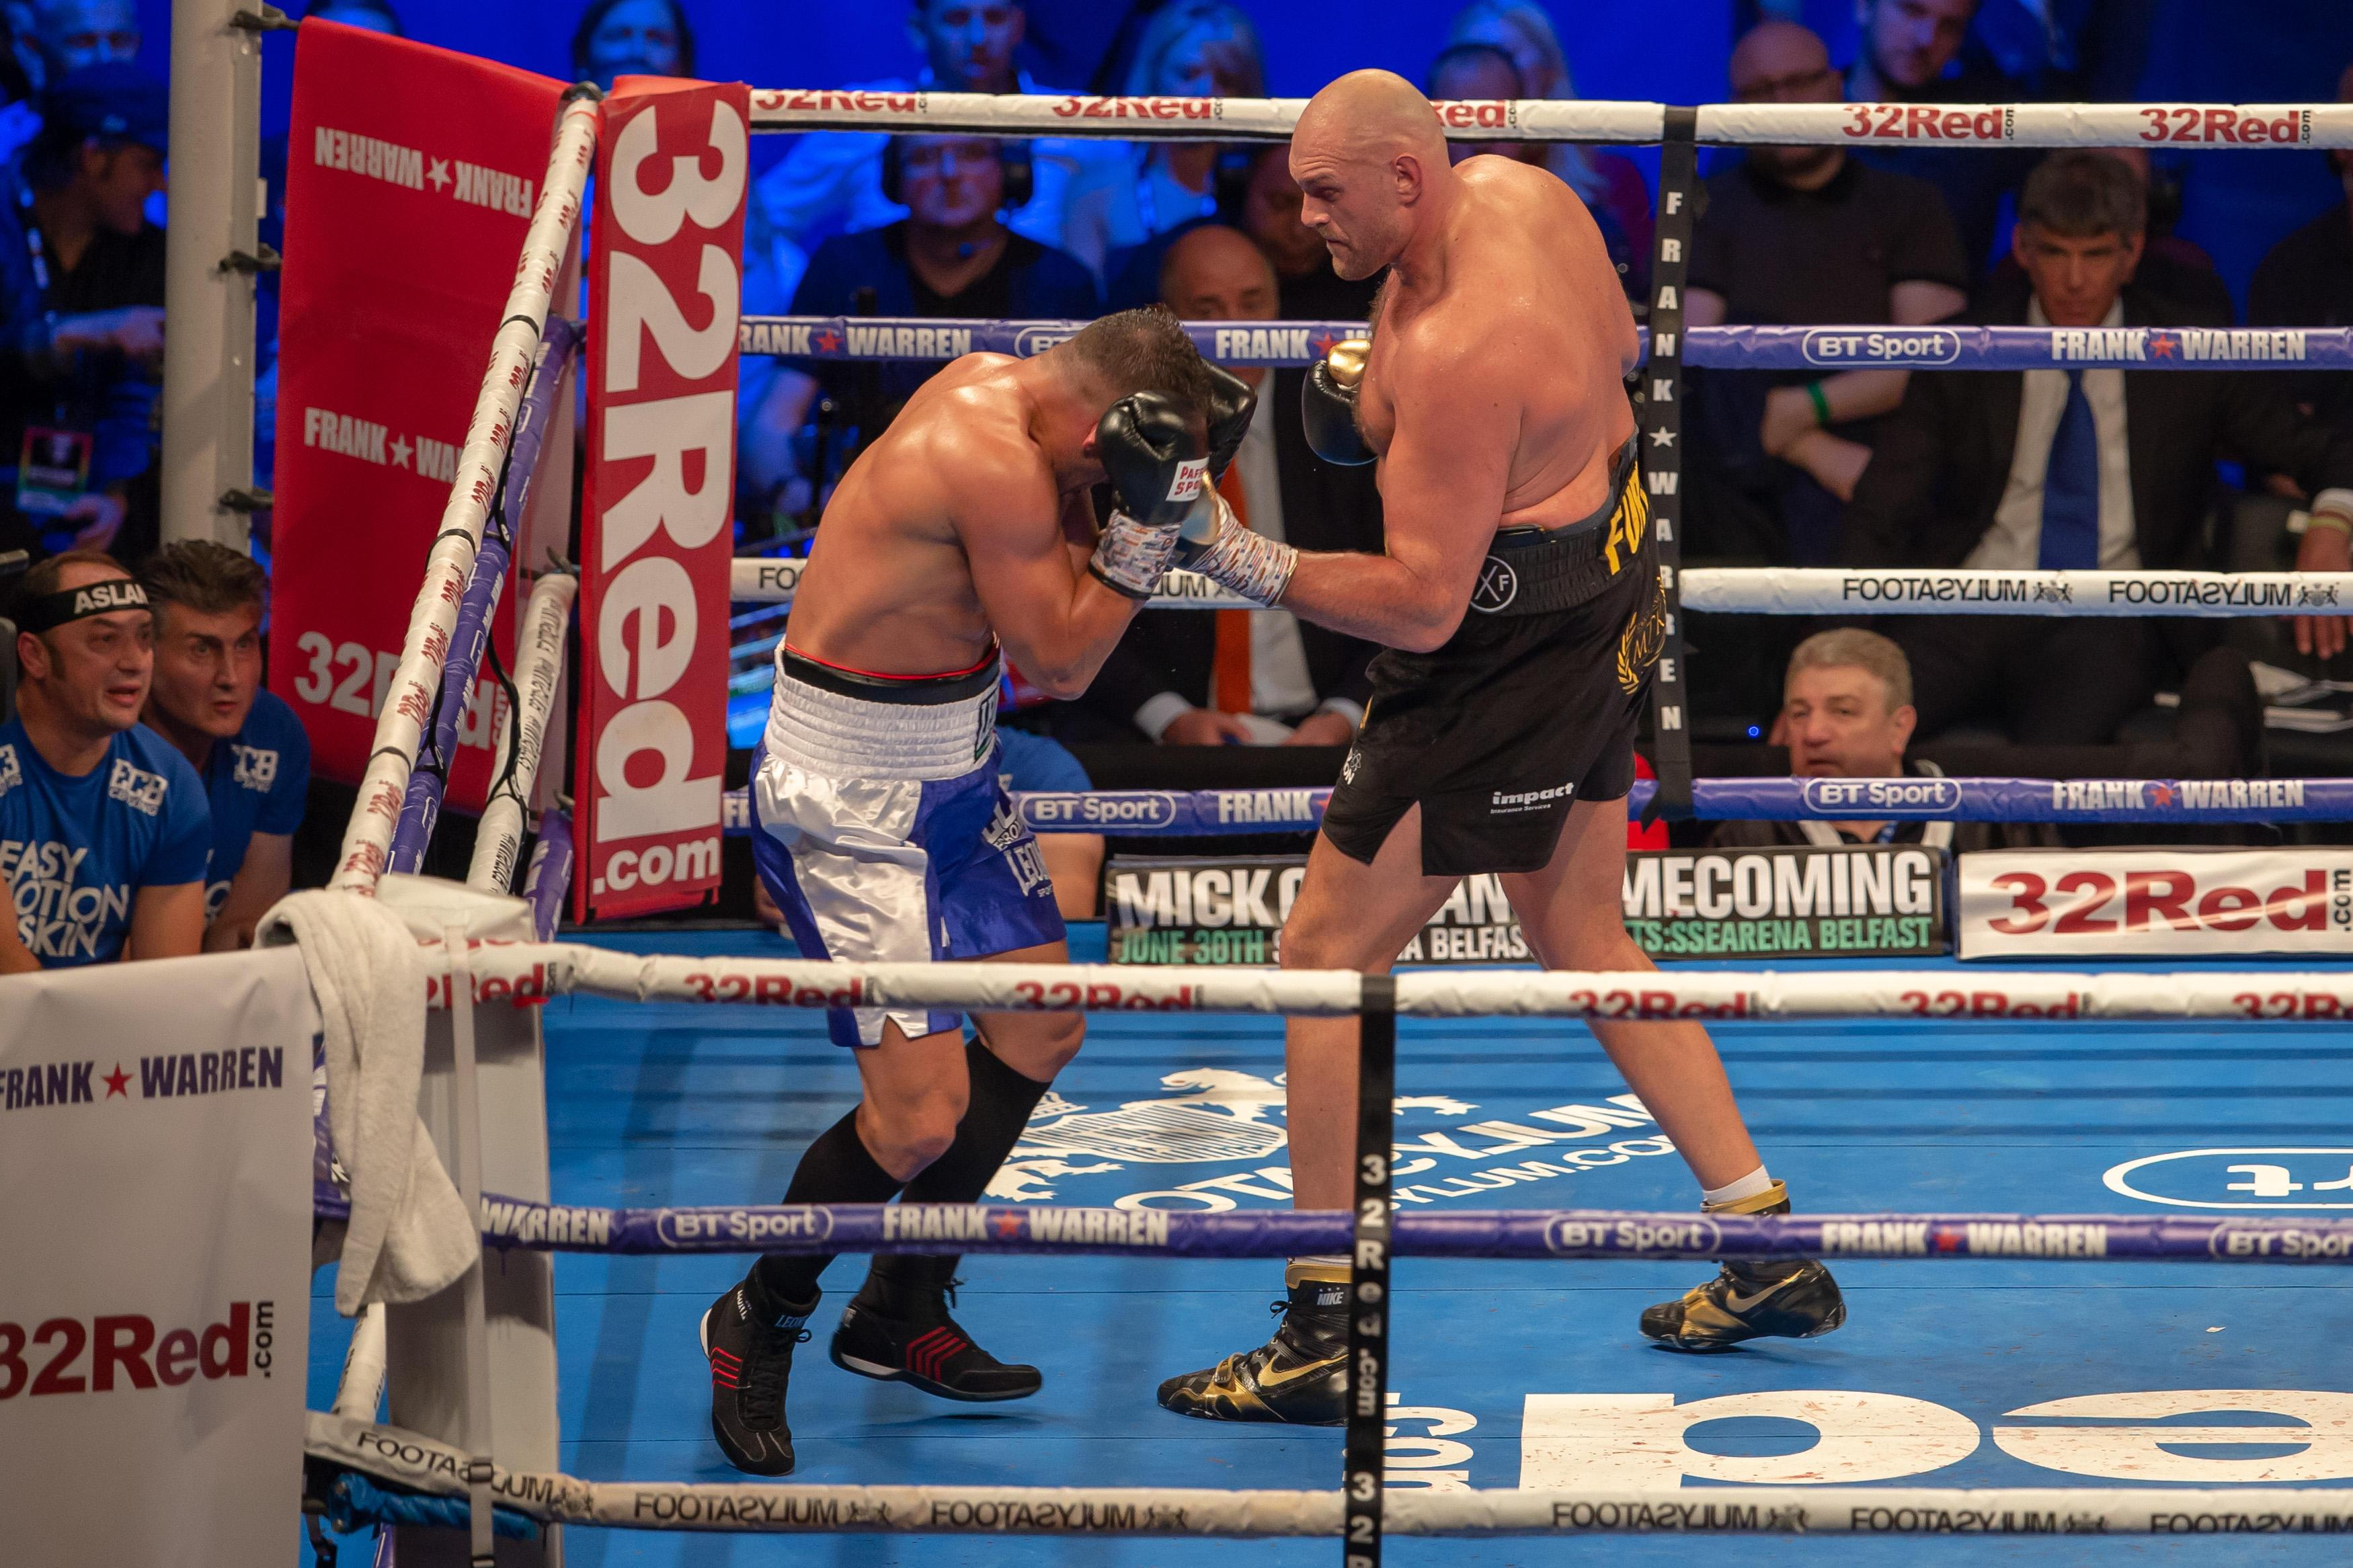 Tyson Fury was up against a far smaller man in a poor fight